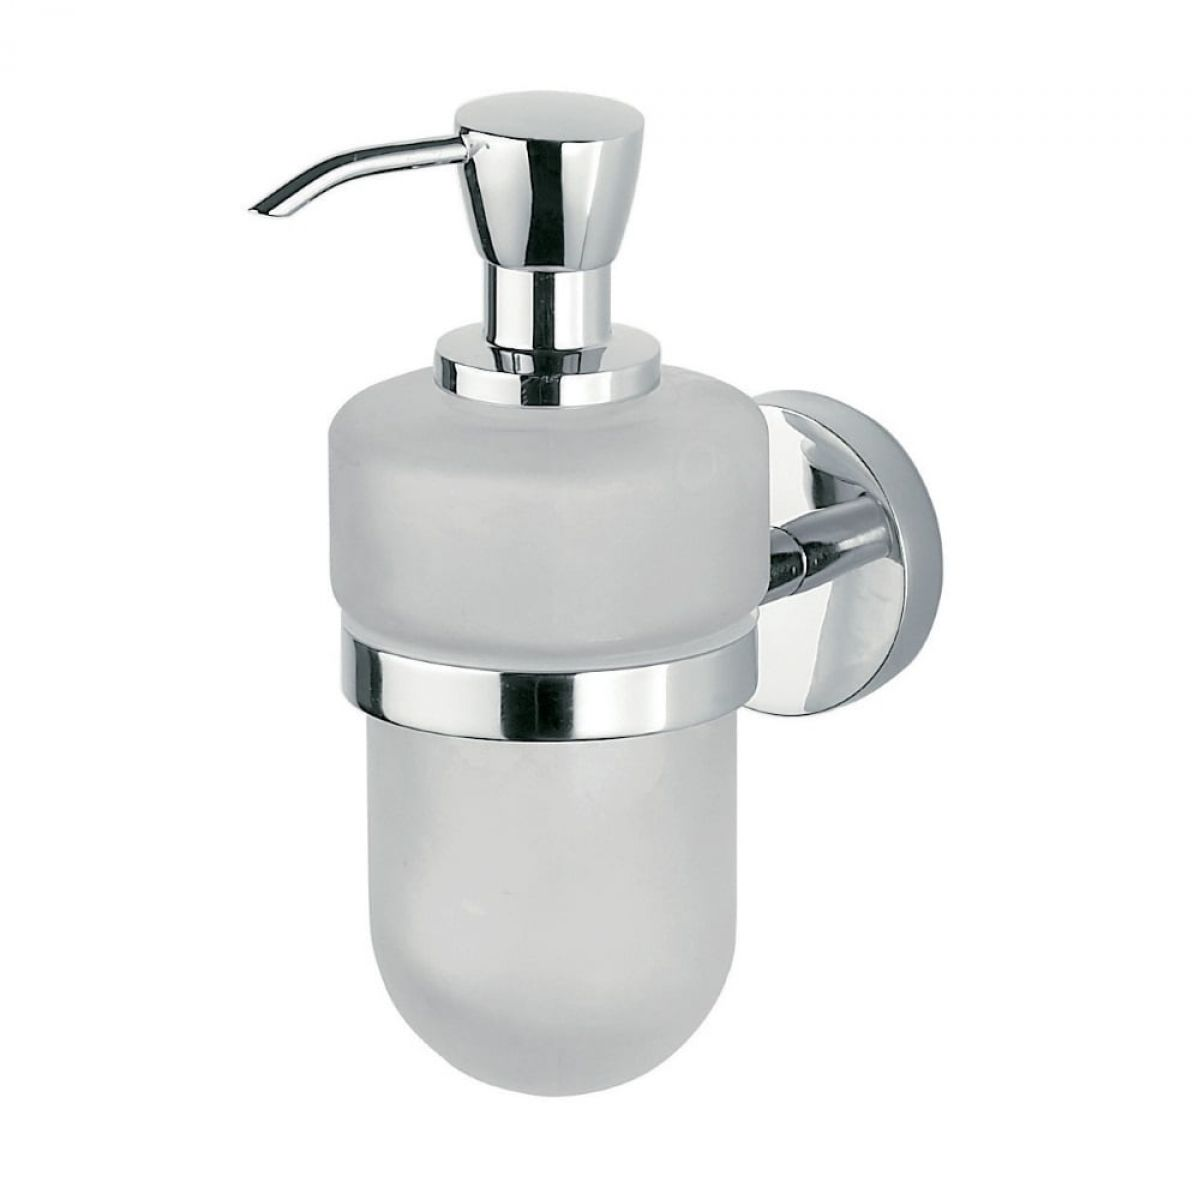 Wall Mounted Soap Dispenser Inda Forum Wall Mounted Liquid Soap Dispenser 7 X 17h X